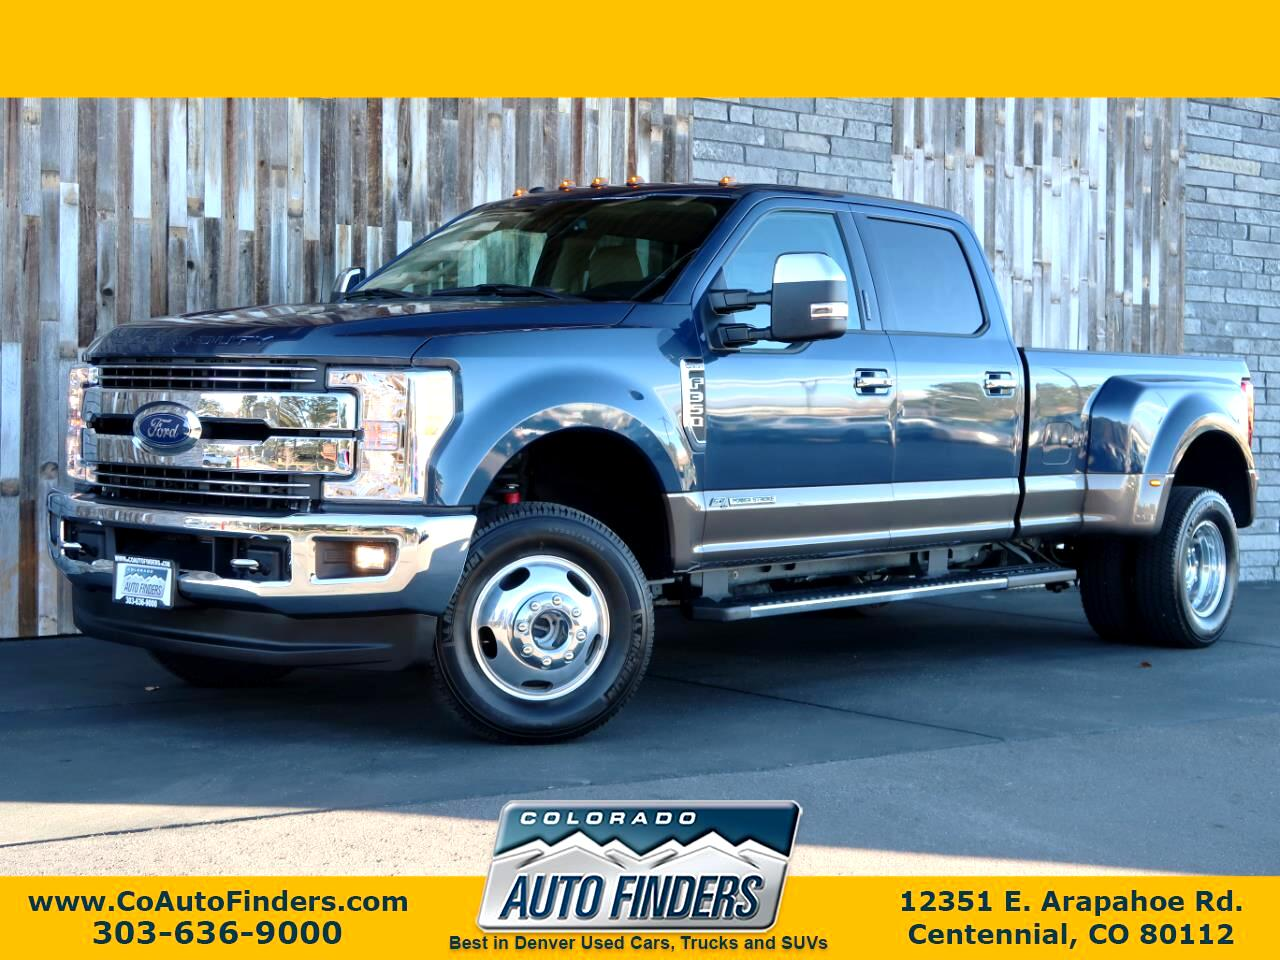 2017 Ford Super Duty F-350 DRW Lariat 4WD Crew Cab 8' Box